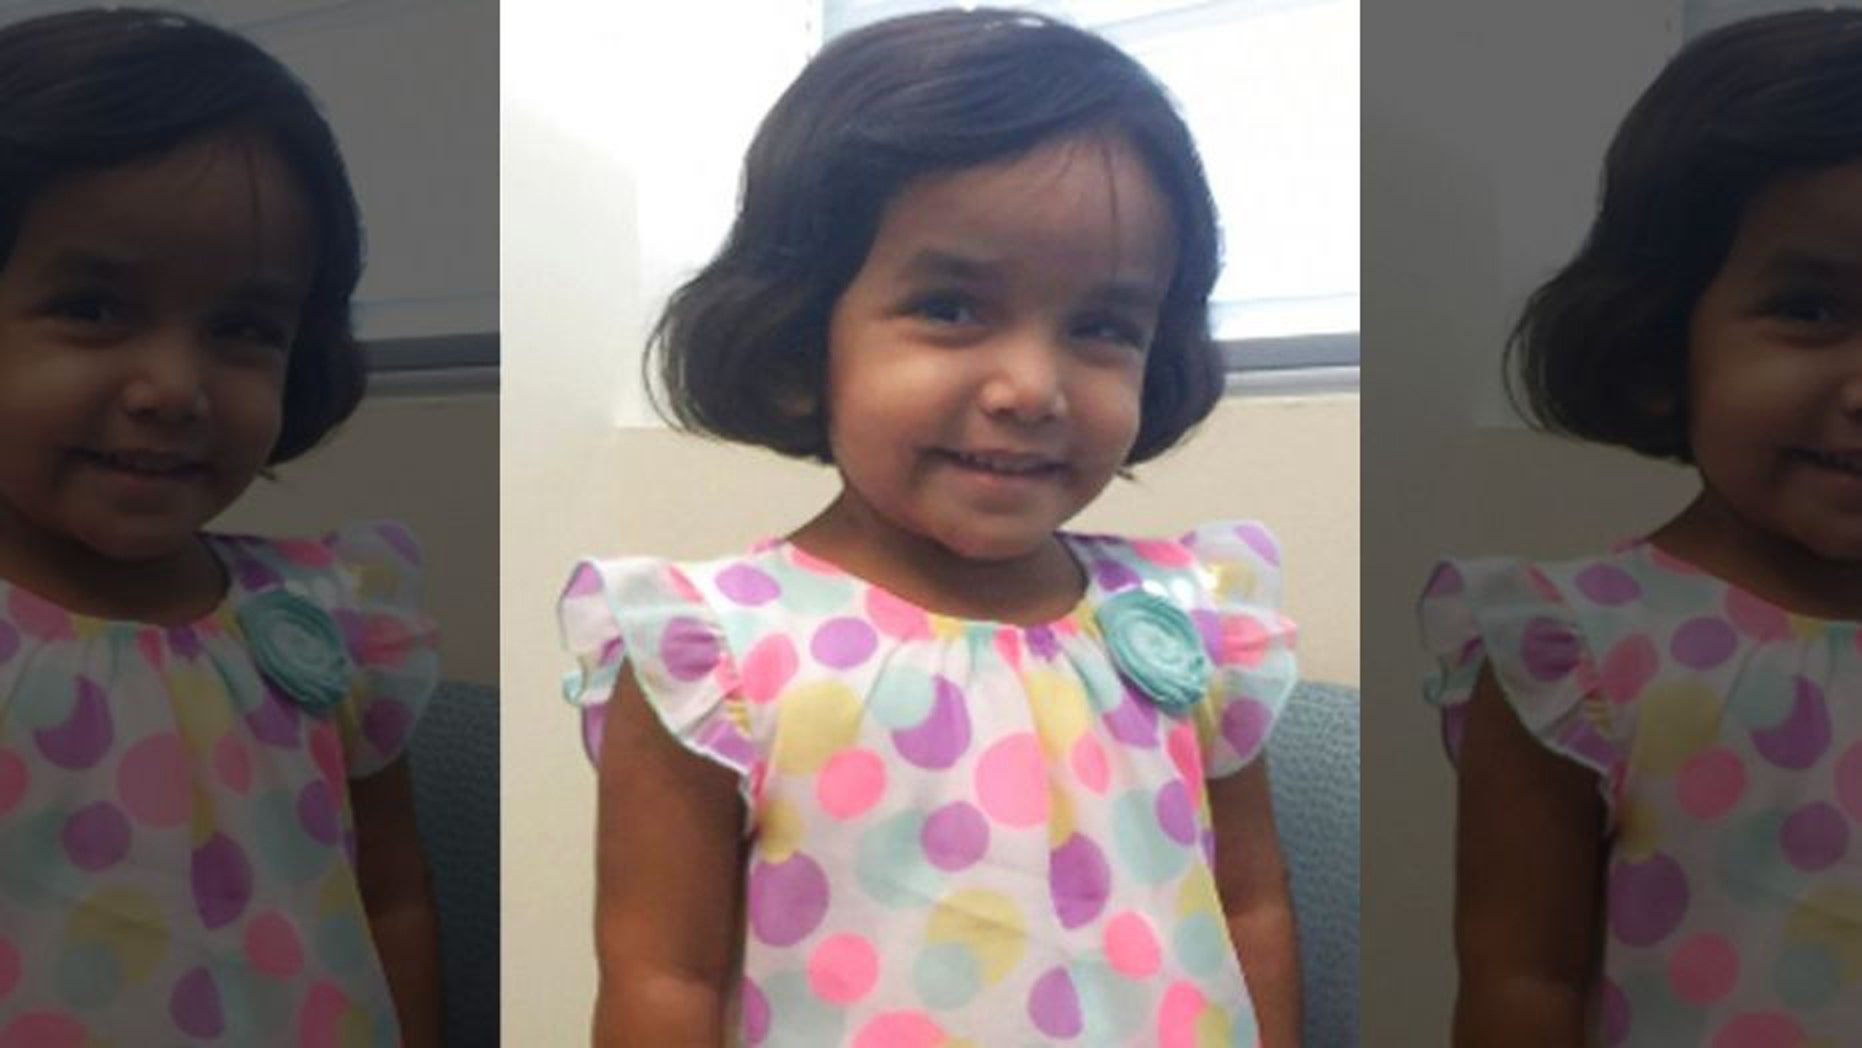 Sherin Mathews, 3, went missing Oct. 14 after her adoptive father allegedly made her stand outside at night — in an alleyway frequented by coyotes.